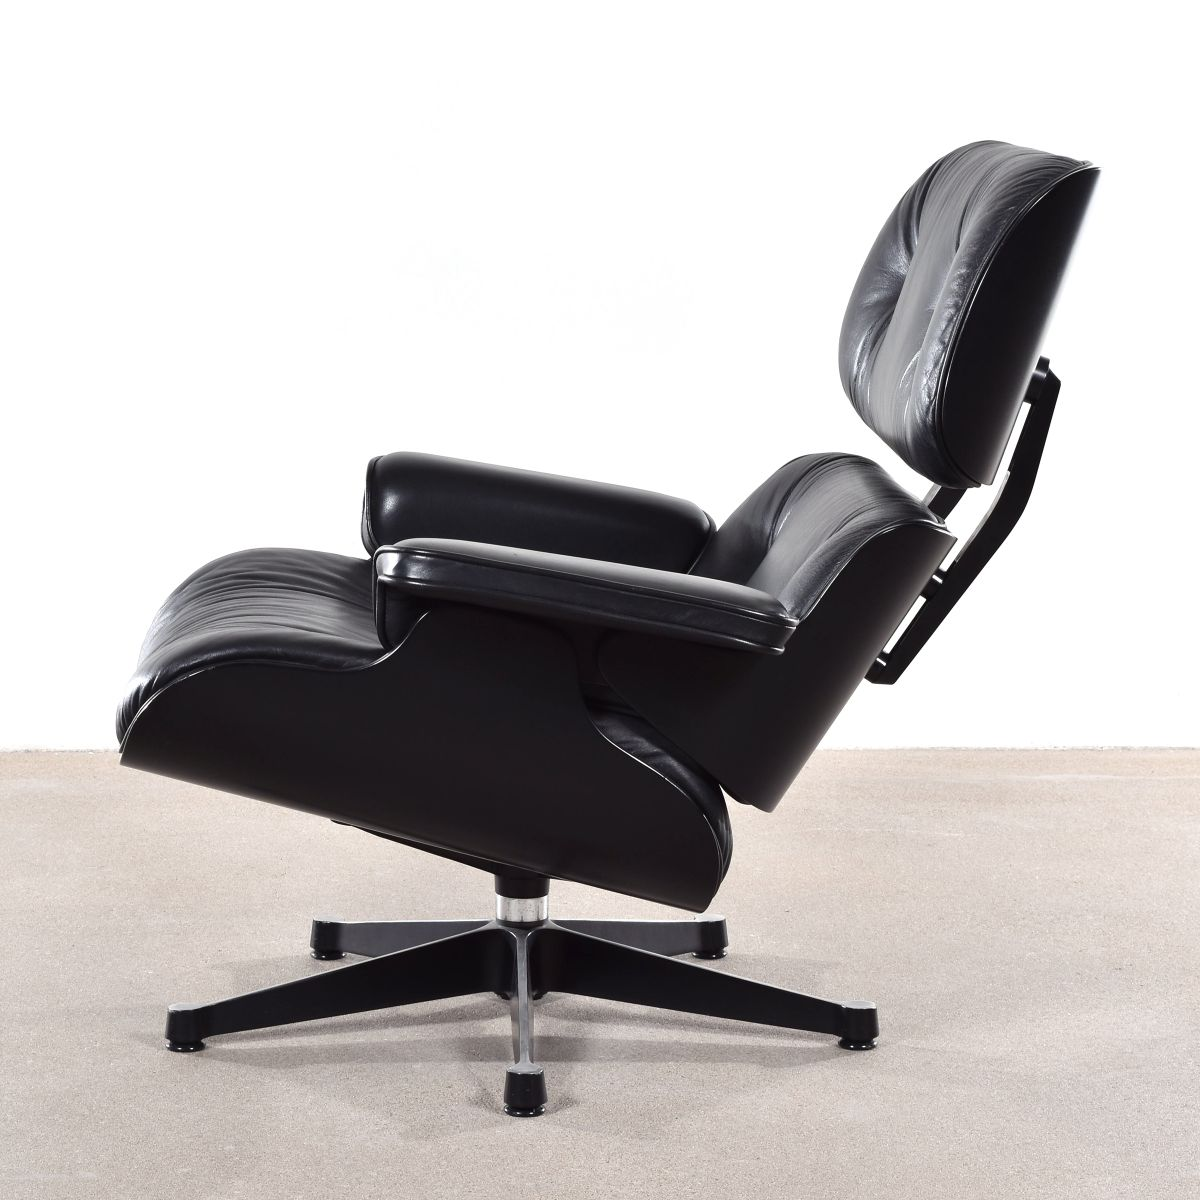 Si ge pivotant noir par charles ray eames pour vitra for Siege eames vitra